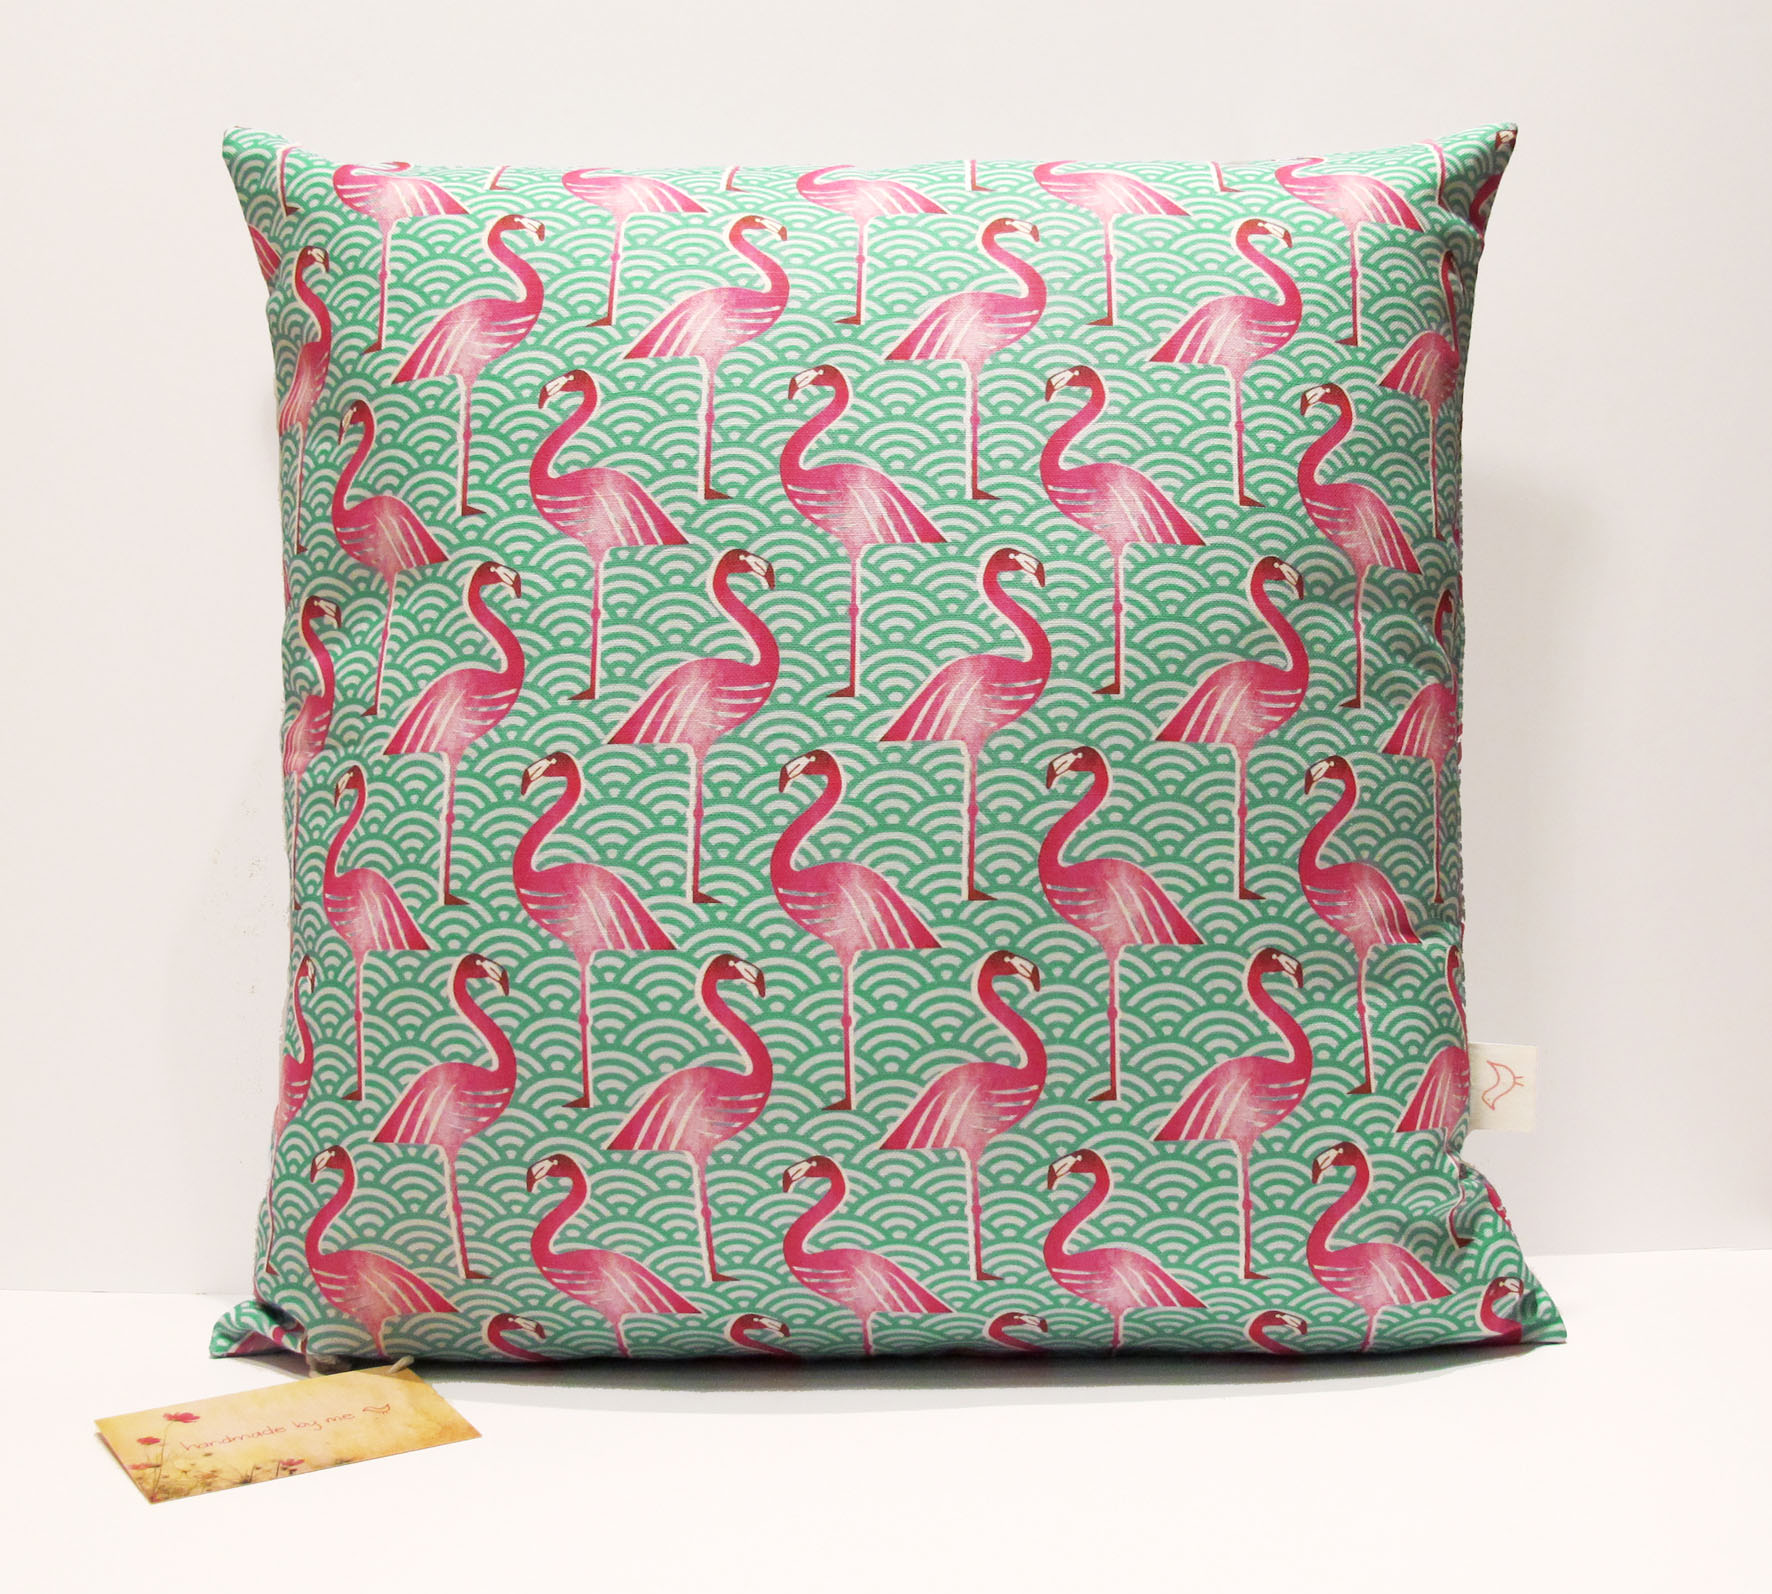 pinkflamingoactualcushion_lr